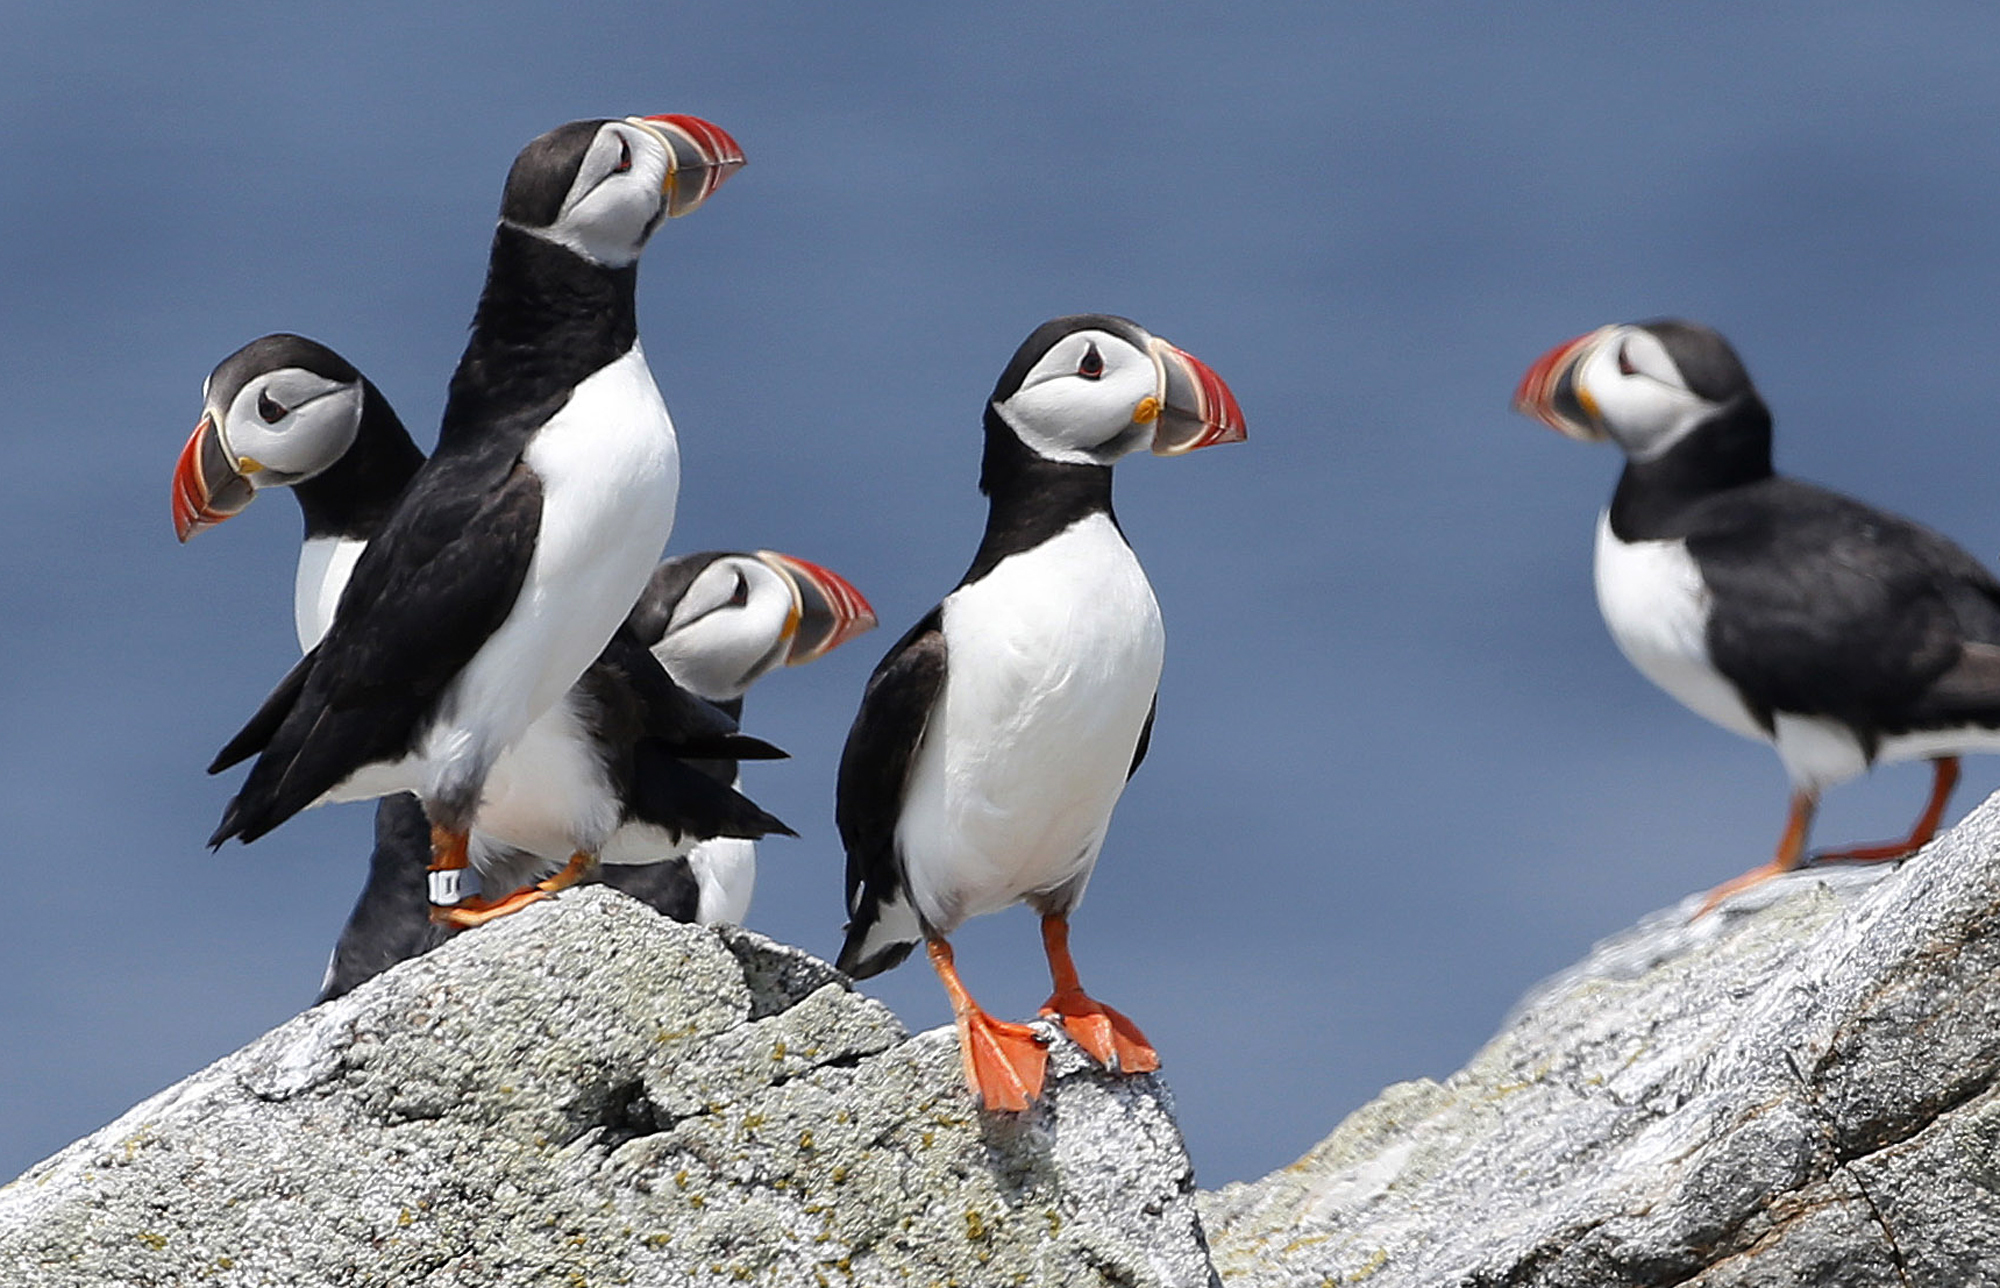 In this Aug. 1, 2014, file photo, Atlantic puffins congregate near their burrows on Eastern Egg Rock, a small island off the coast of Maine. The Audubon Society said 2017 was a great year for puffin reproduction. It's a rare bit of good news for the birds who have struggled in recent years due to changes in food availability. AP WIREPHOTO